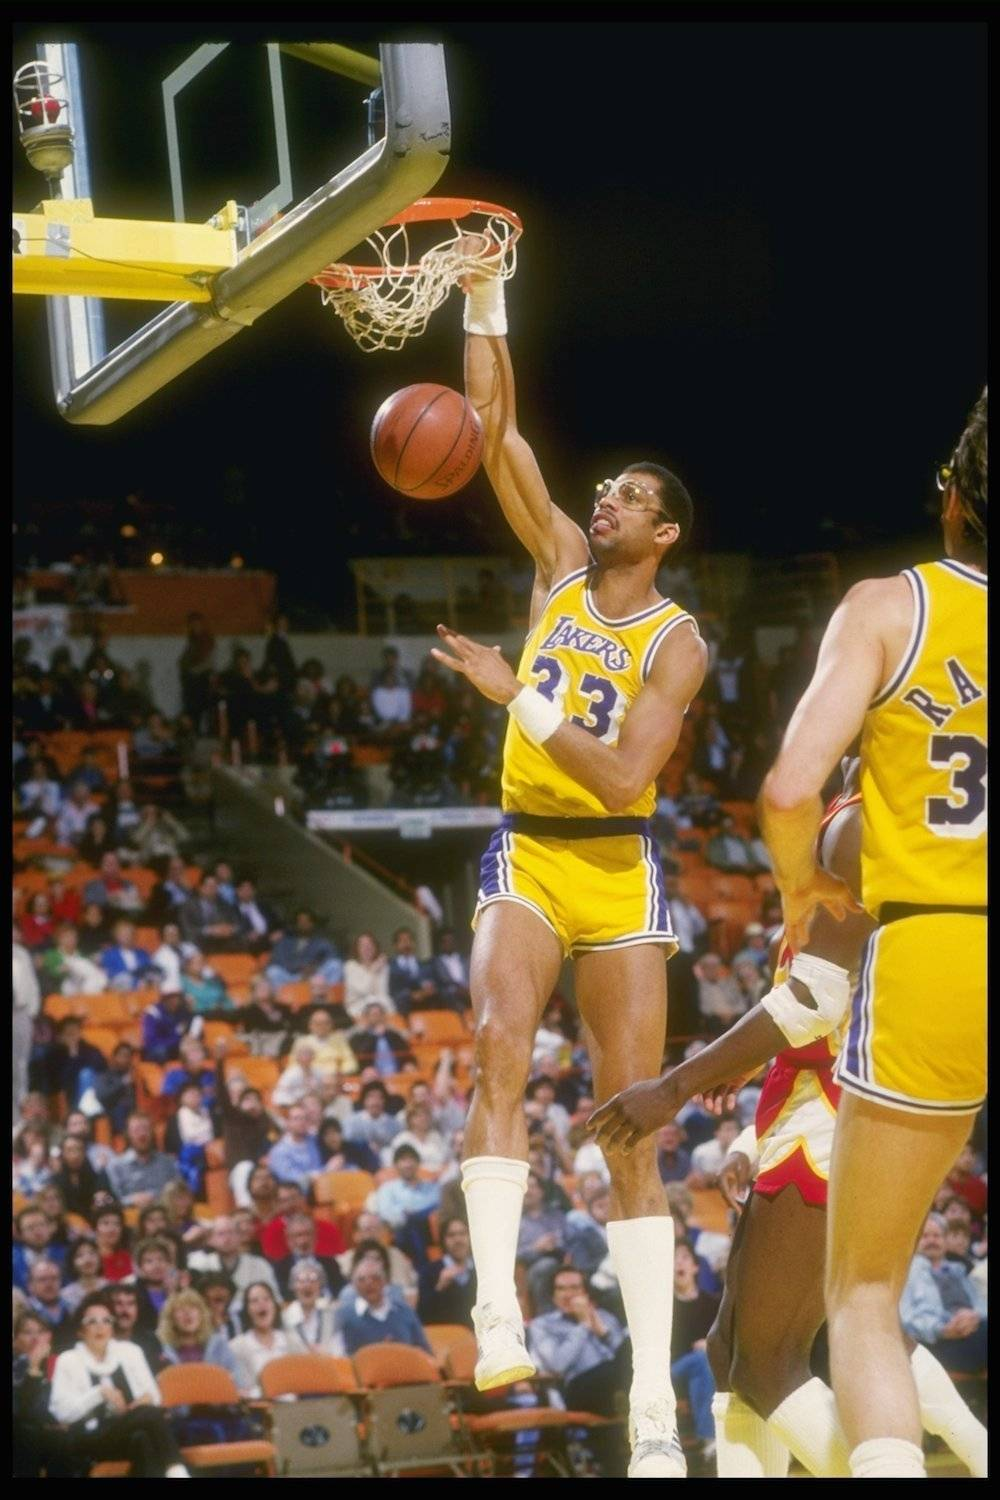 Kareem Abdul-Jabbar / Getty Images